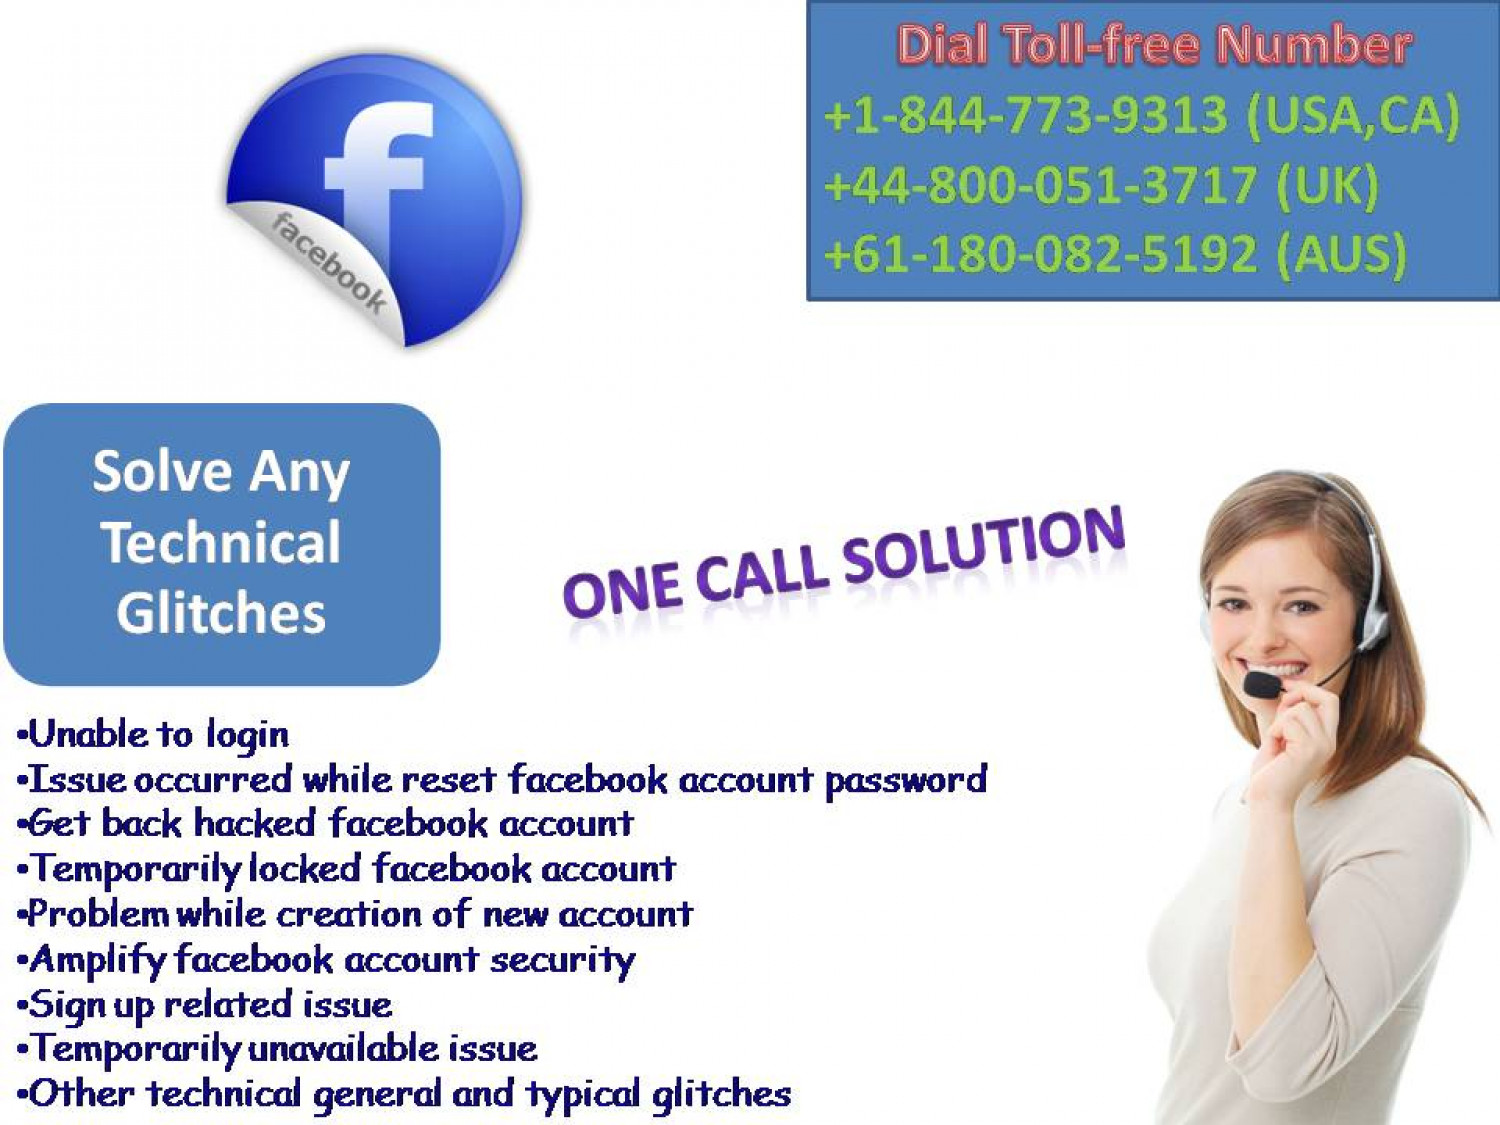 Facebook Customer Support Number@+1-844-773-9313 Infographic